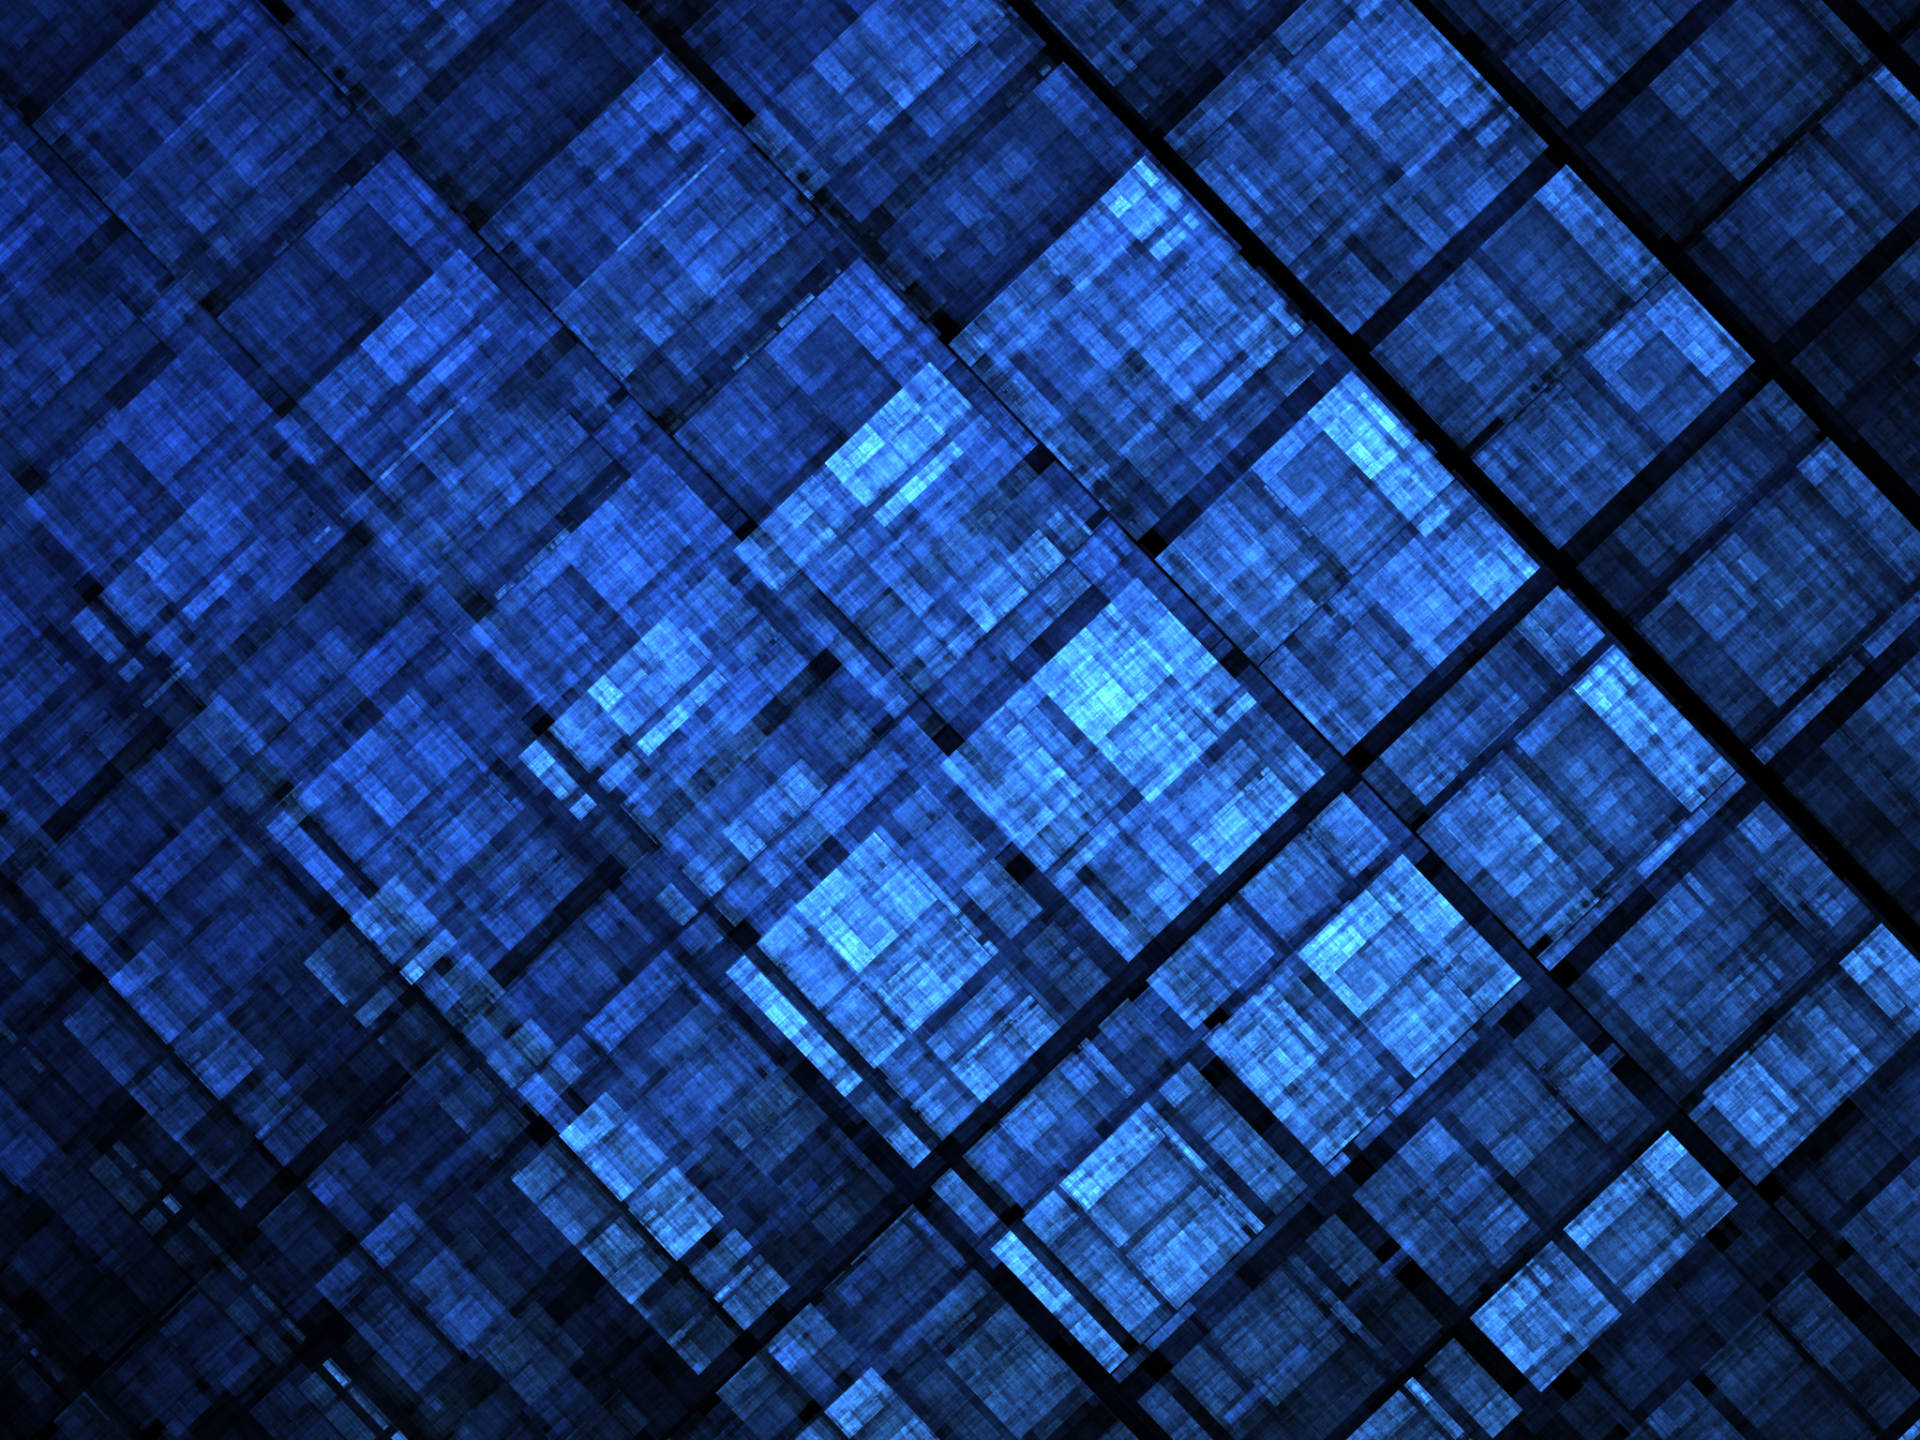 Abstract - Fractal  Pattern Texture Blue Apophysis (software) Square Digital Art Digital Artistic Abstract Wallpaper